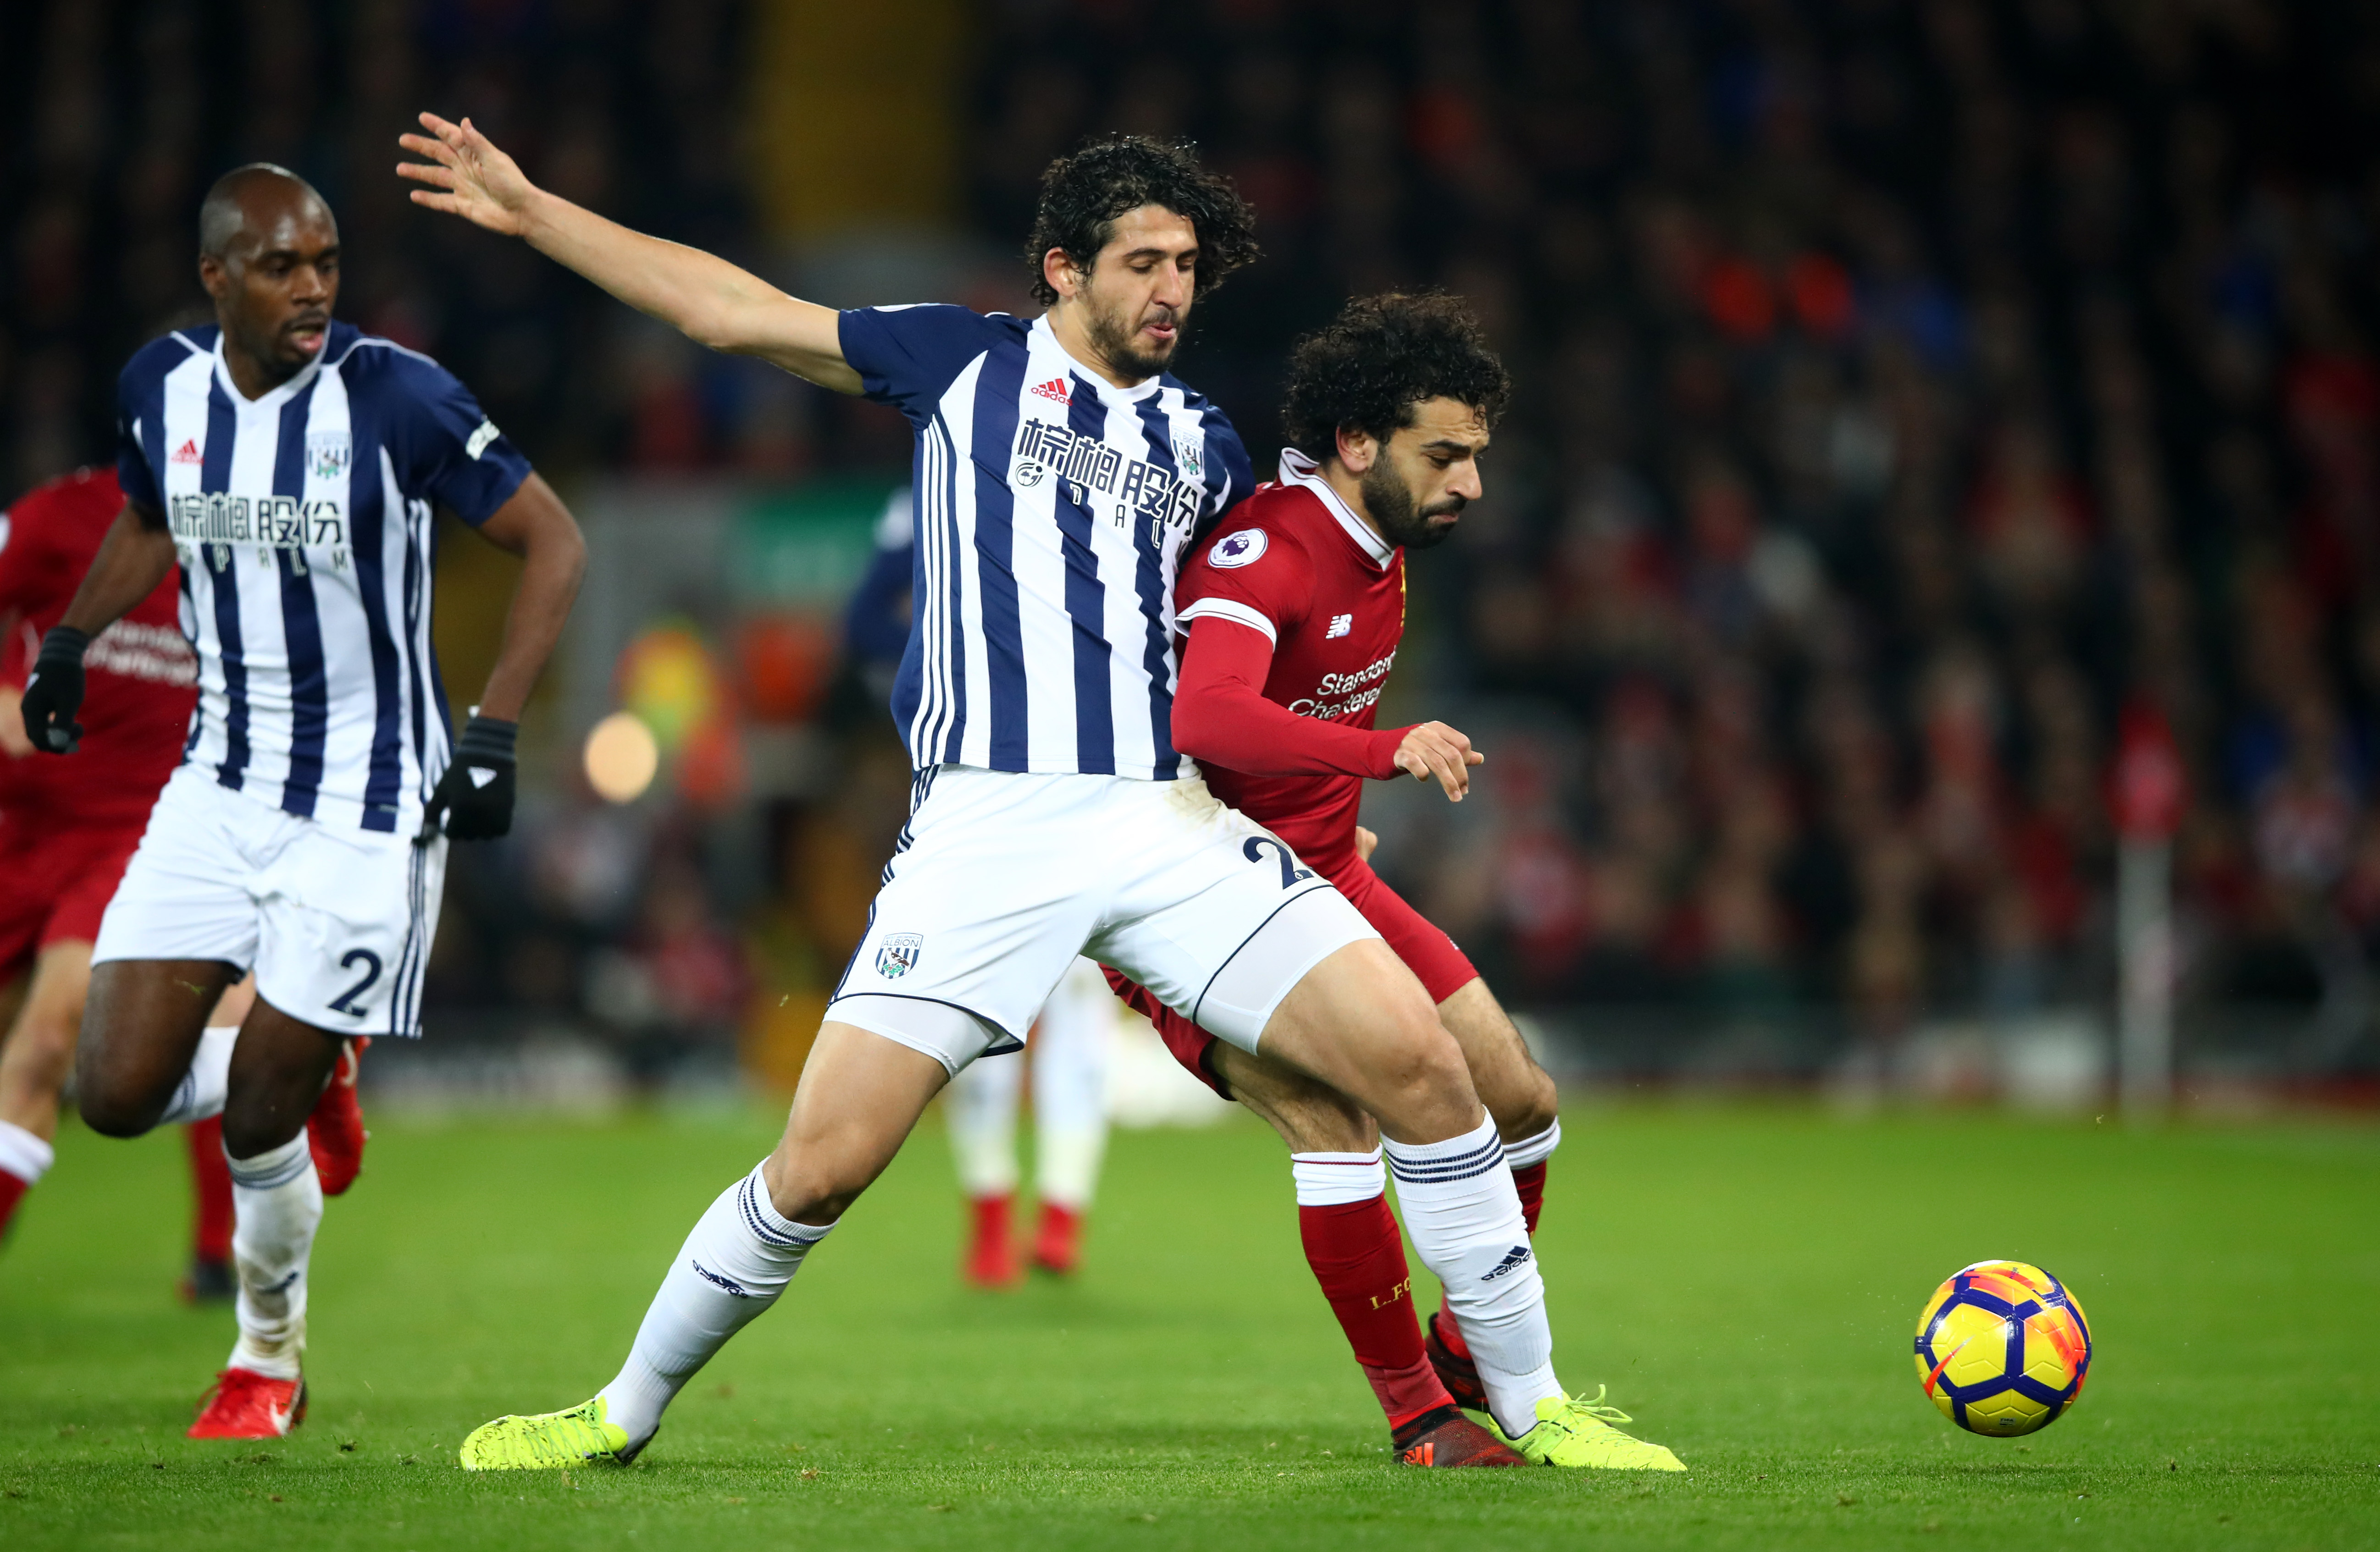 Ahmed Hegazi & Mohamed Salah - Liverpool v West Bromwich Albion